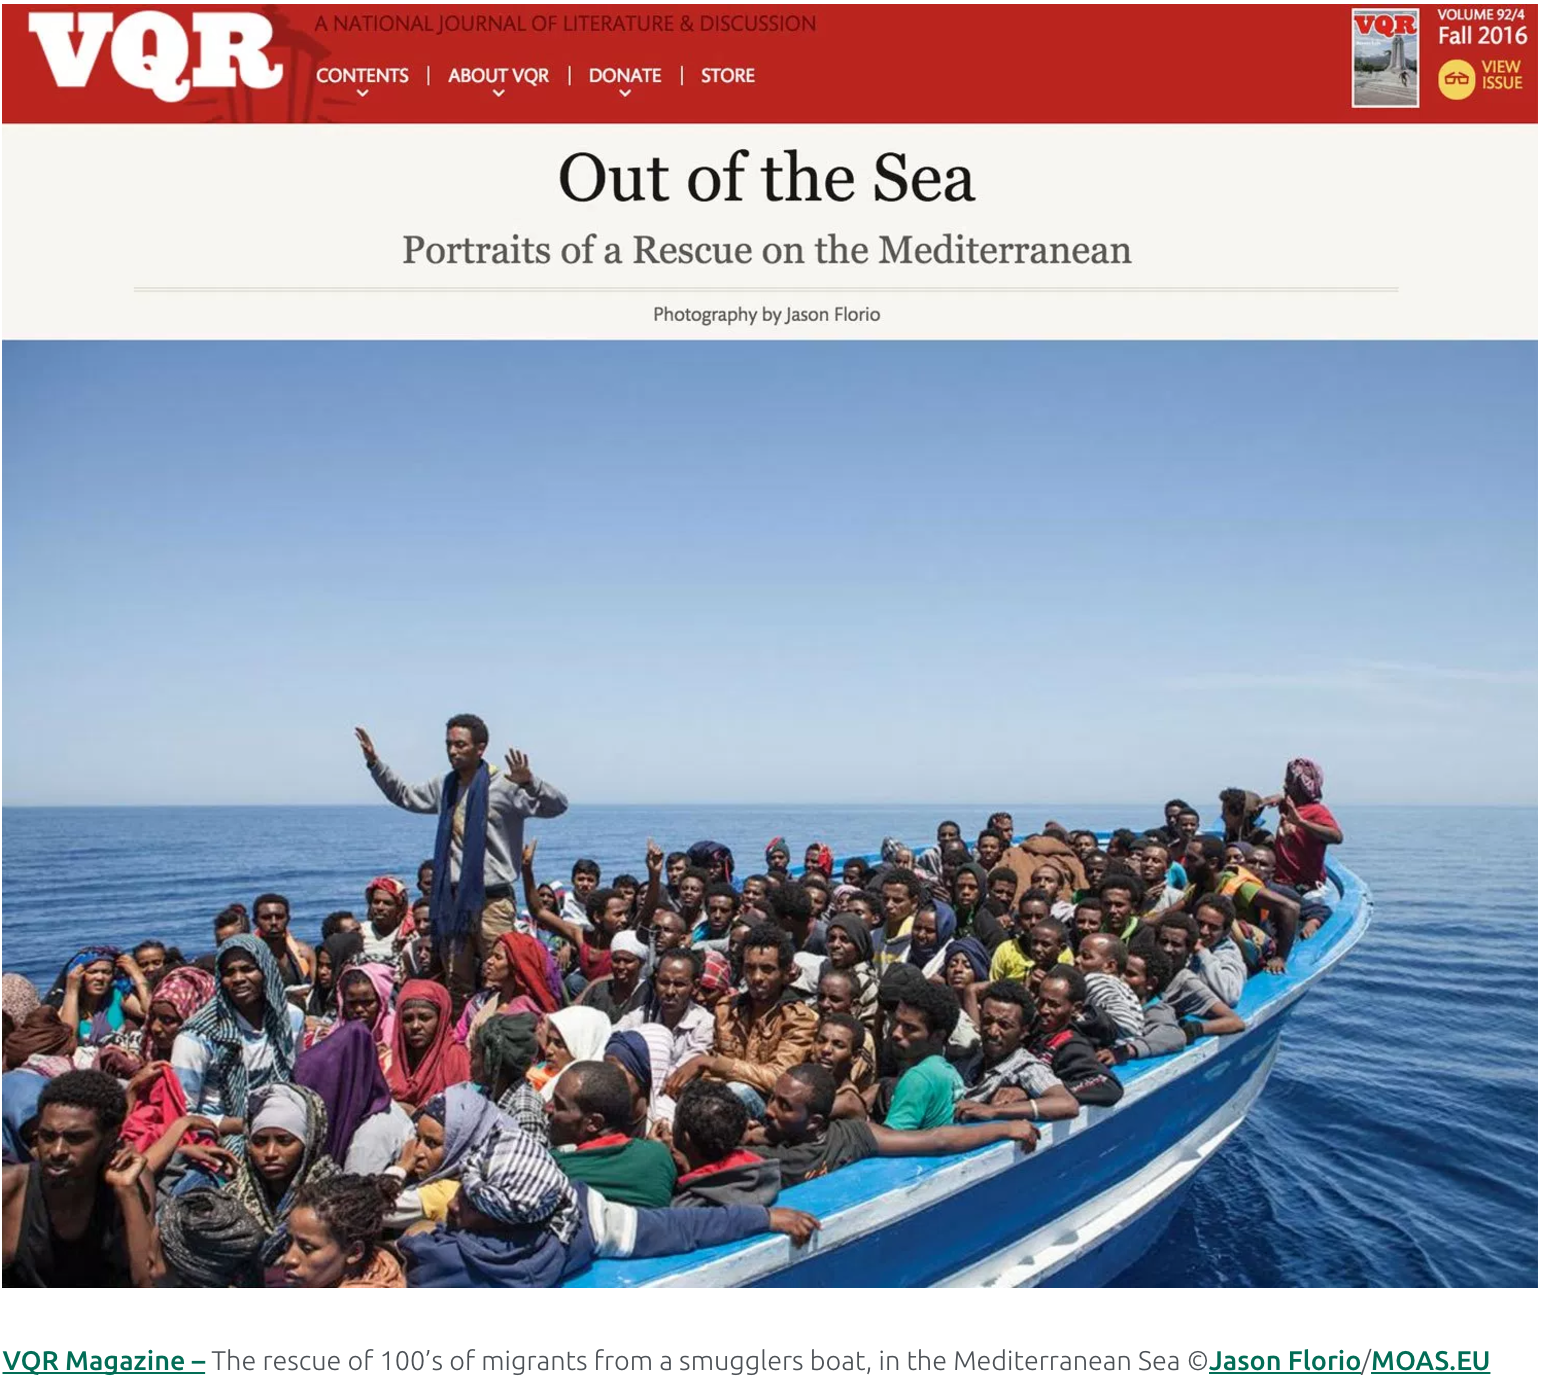 Jason Florio – VQR Prize for Photography, 2016, 'Out of the Sea'